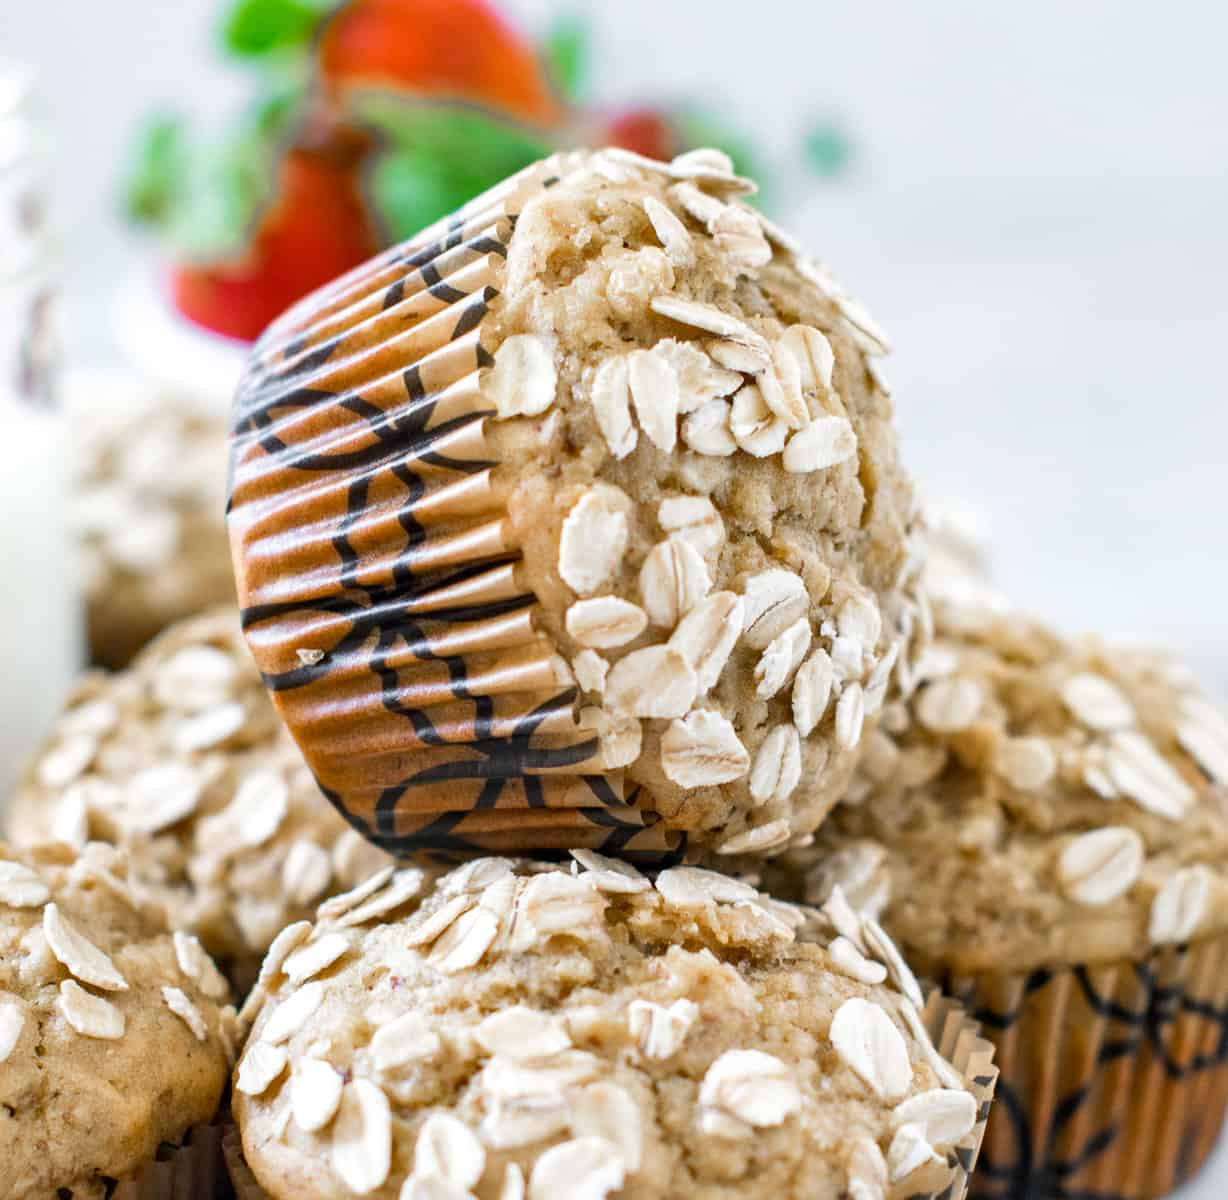 Oatmeal Muffin stacked over other muffins